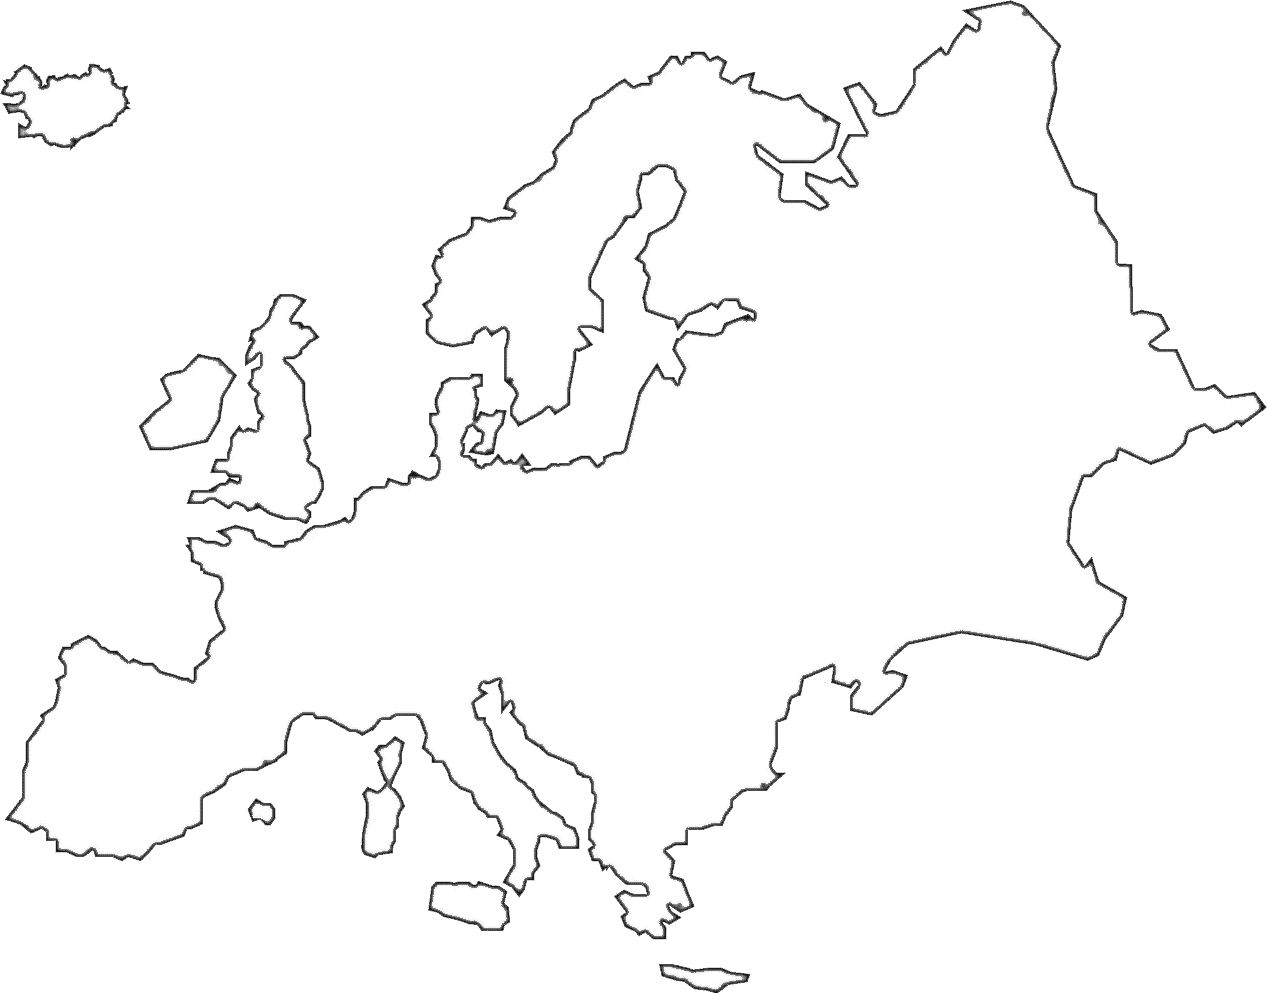 Europe Continent Outline Map Pictures to Pin on Pinterest